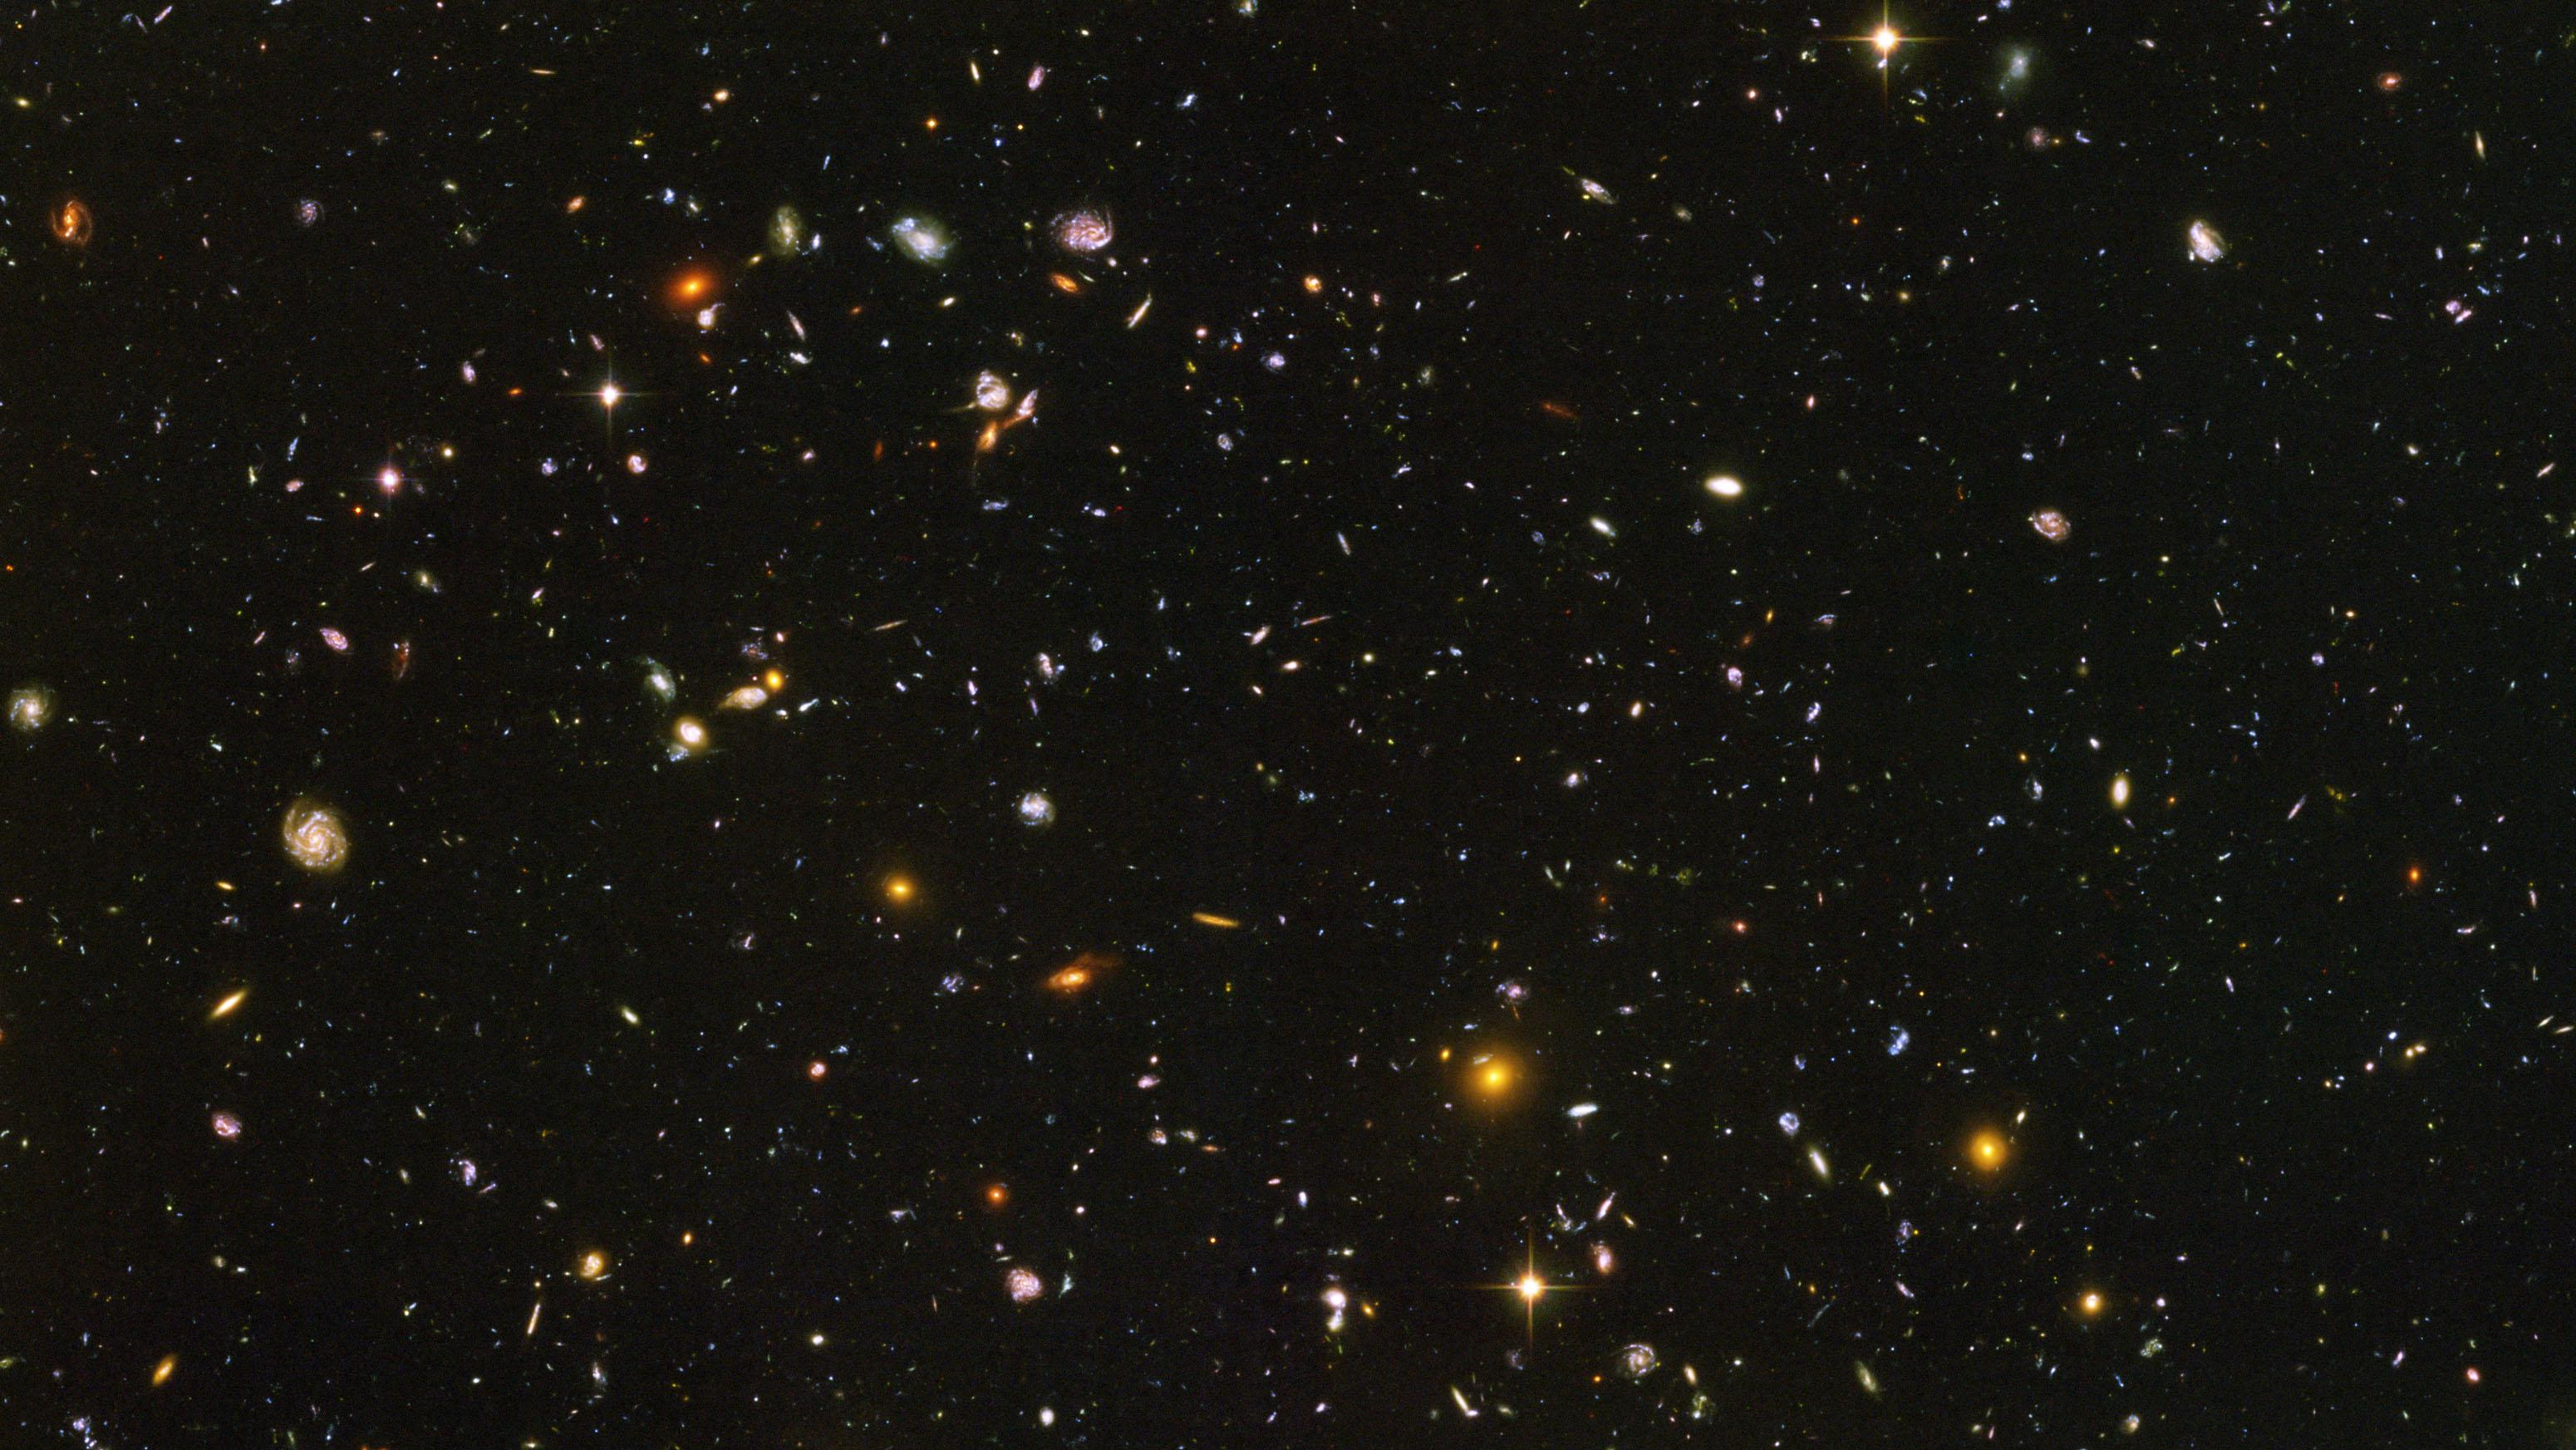 Hubble Deep Field Image Wallpaper